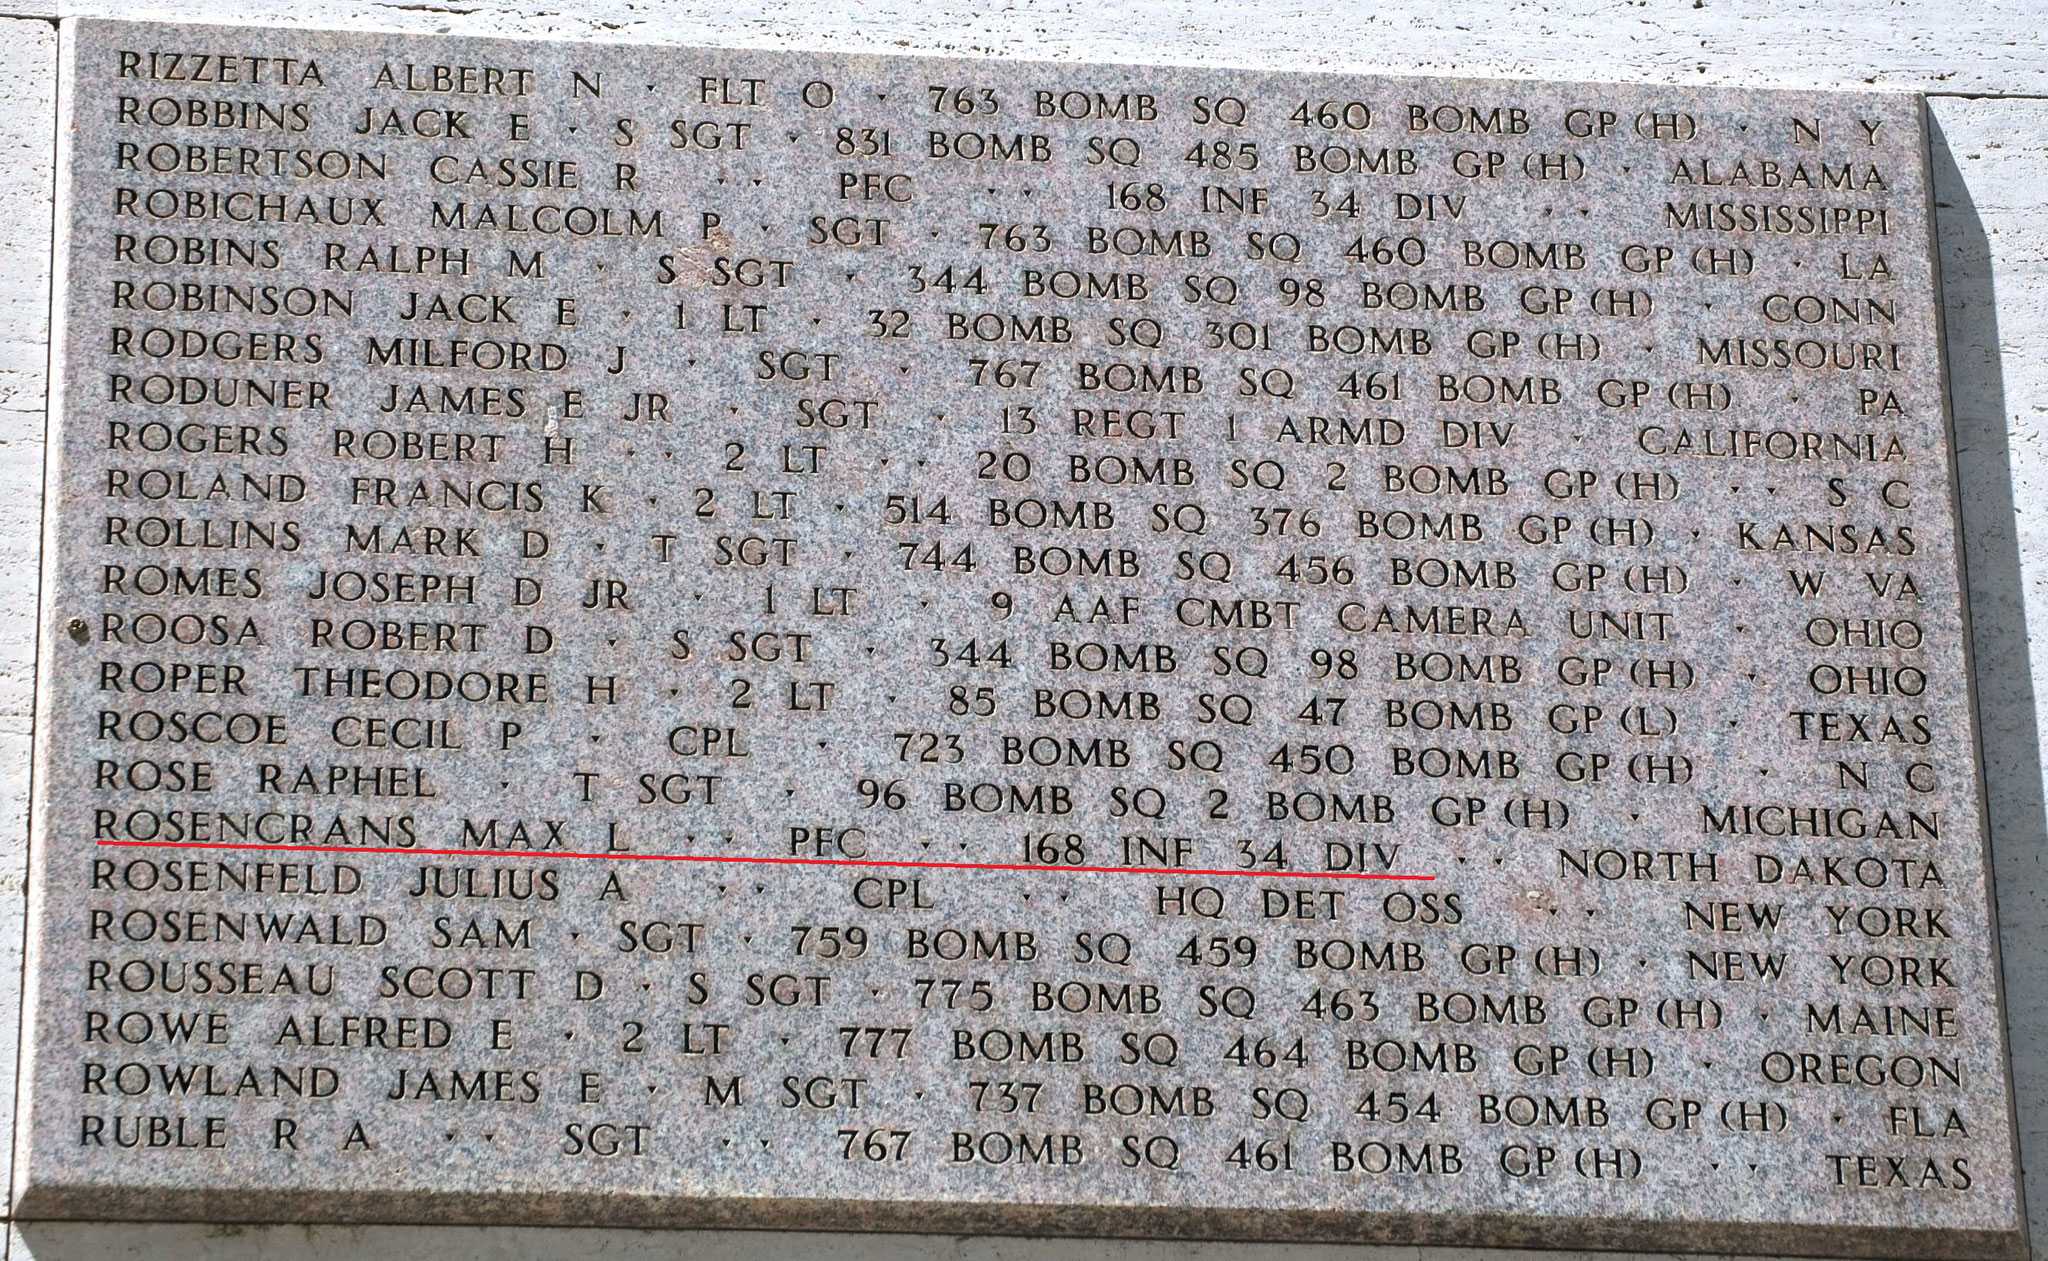 SGT Rosencrans Max L.  (Wall Of Missing cimitero americano di Firenze)